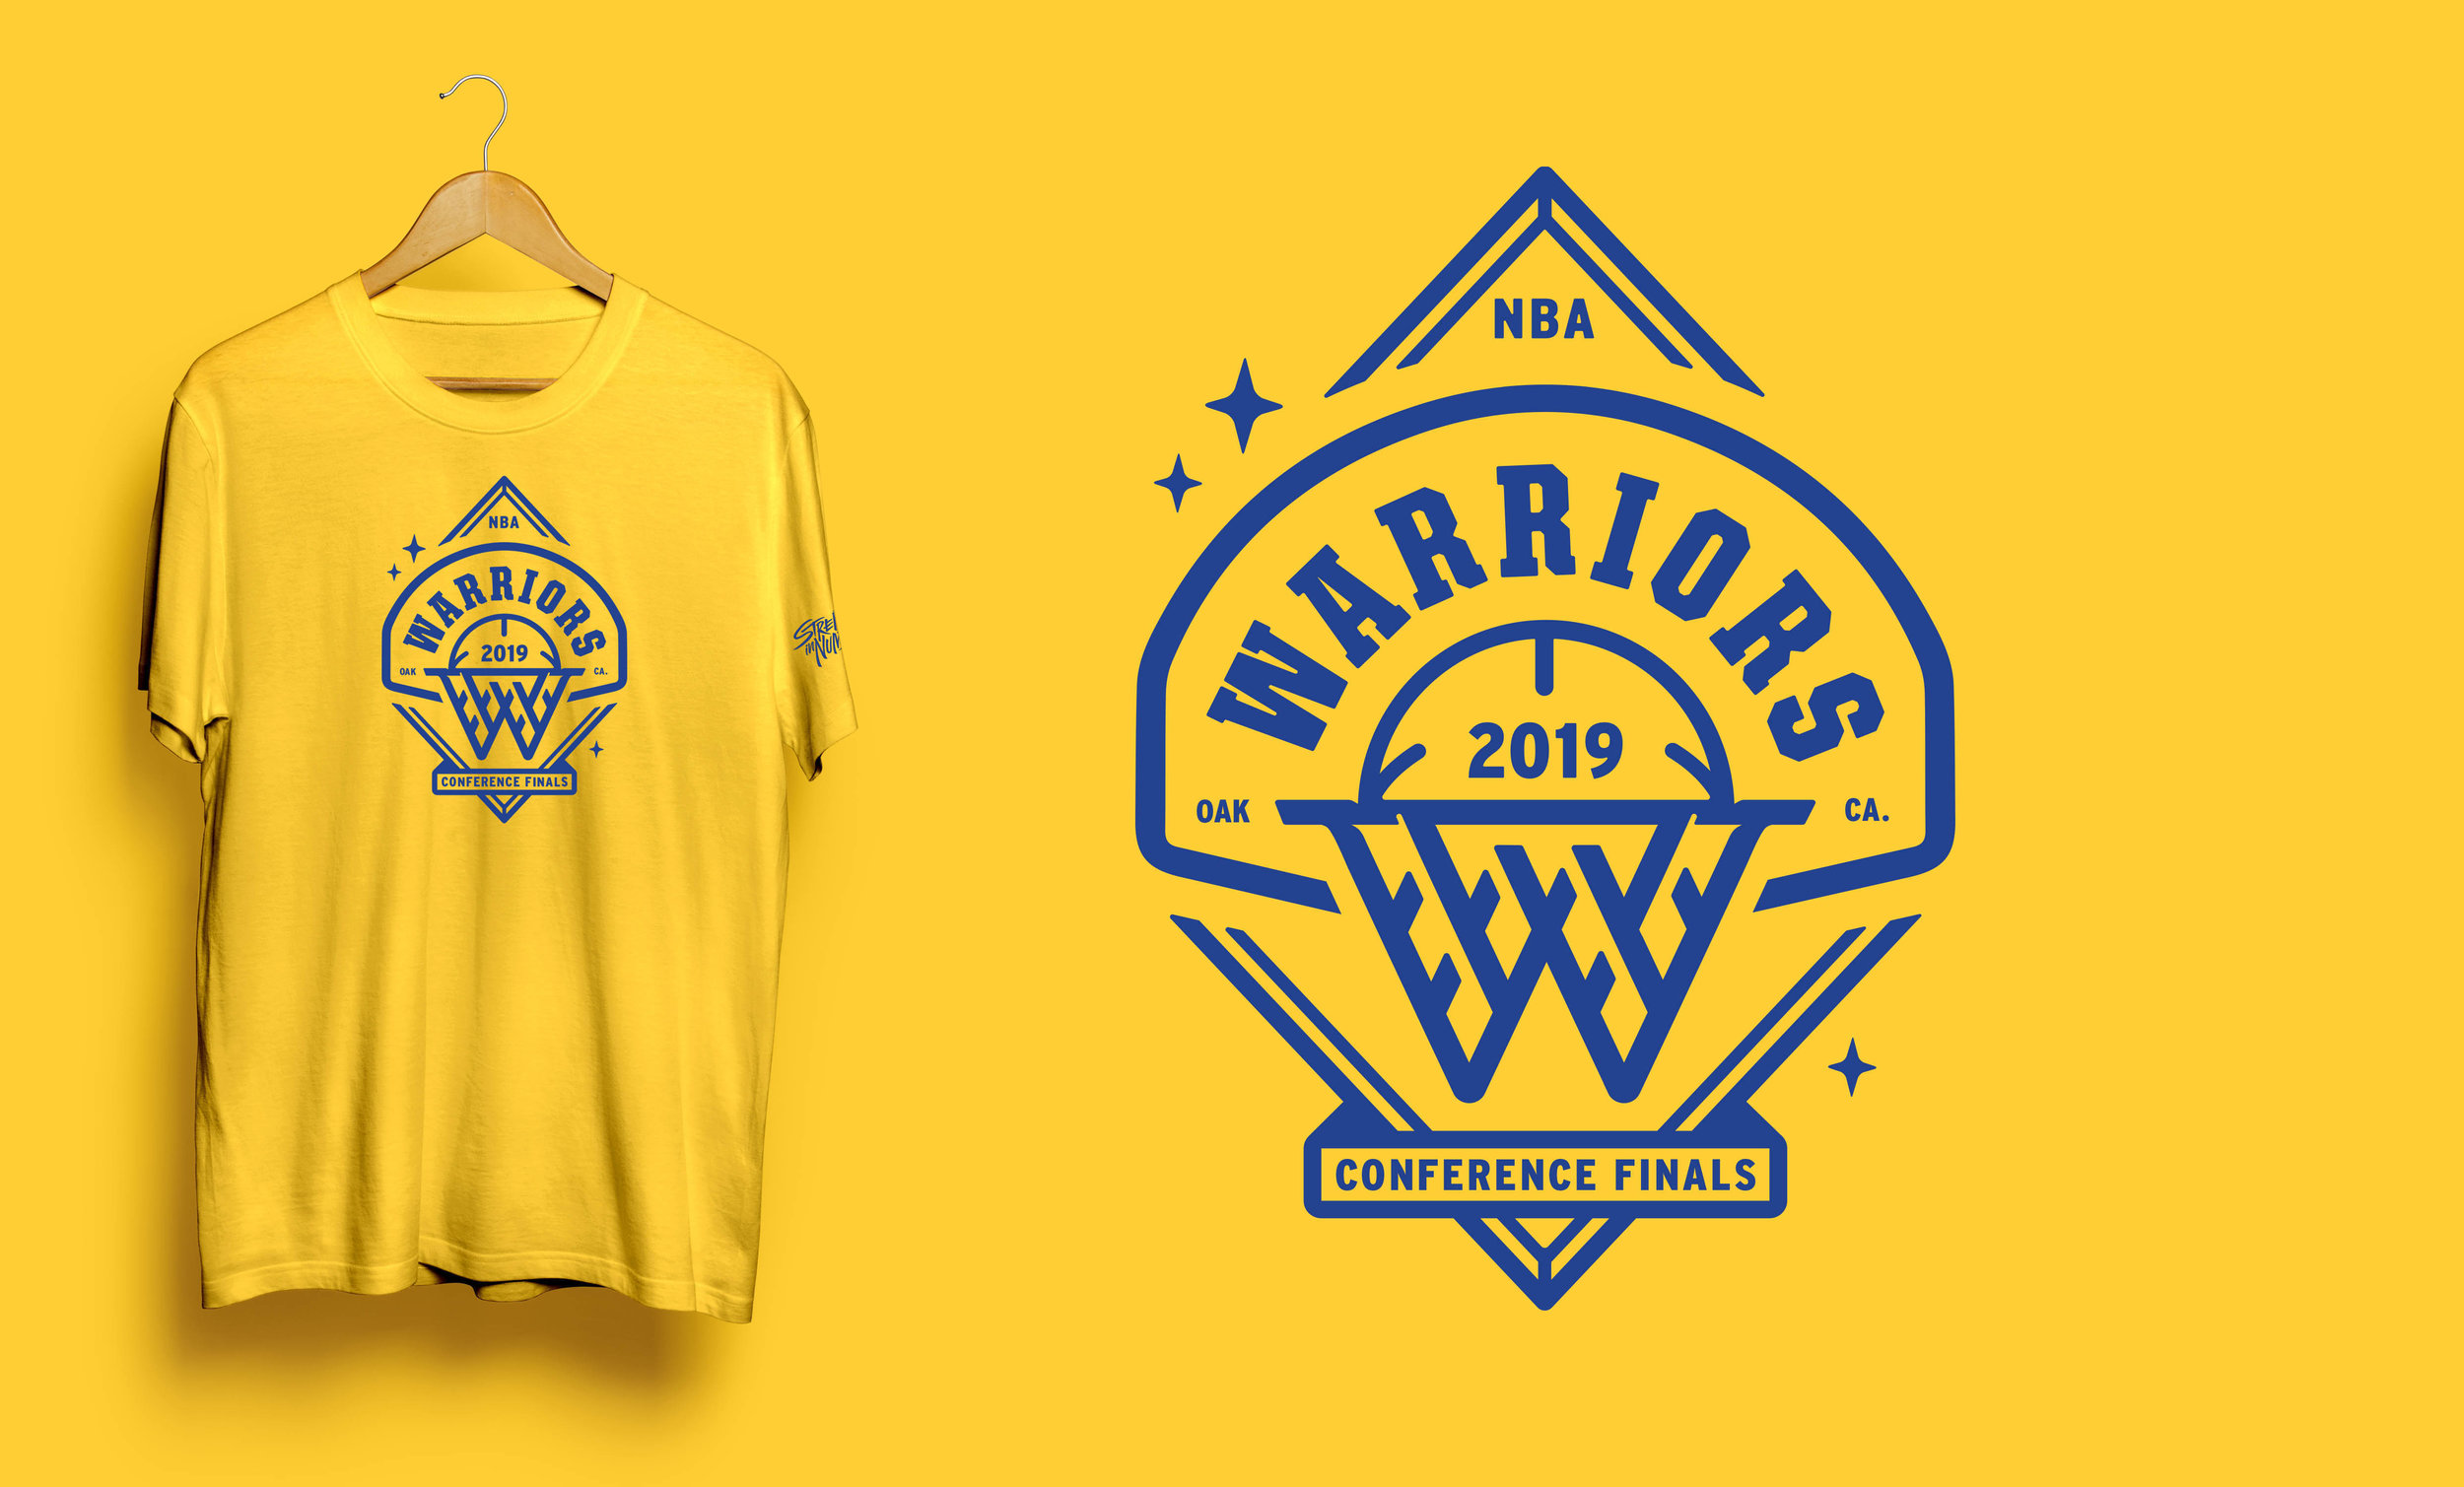 BG_Warriors_shirts3.jpg